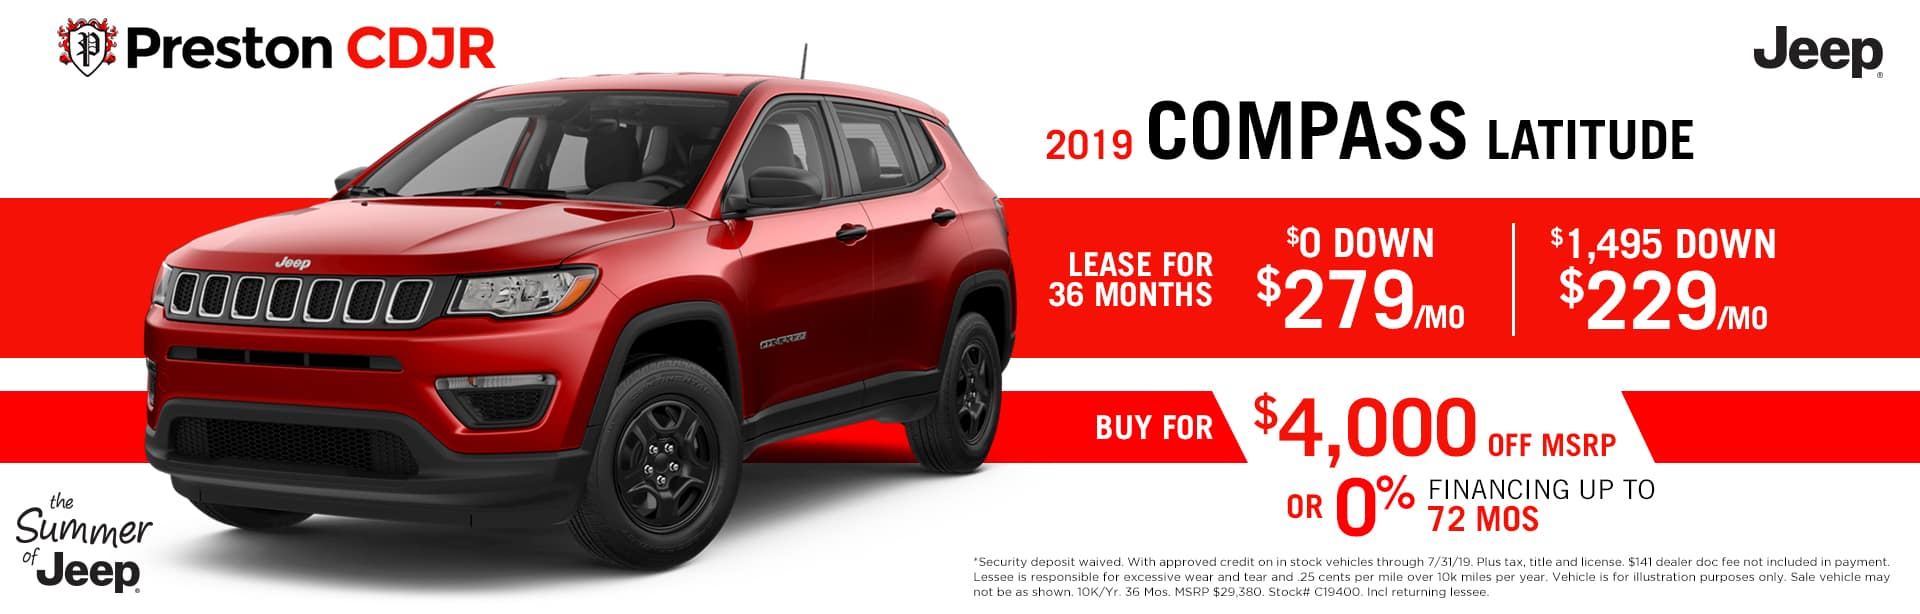 July special on the 2019 Jeep Compass